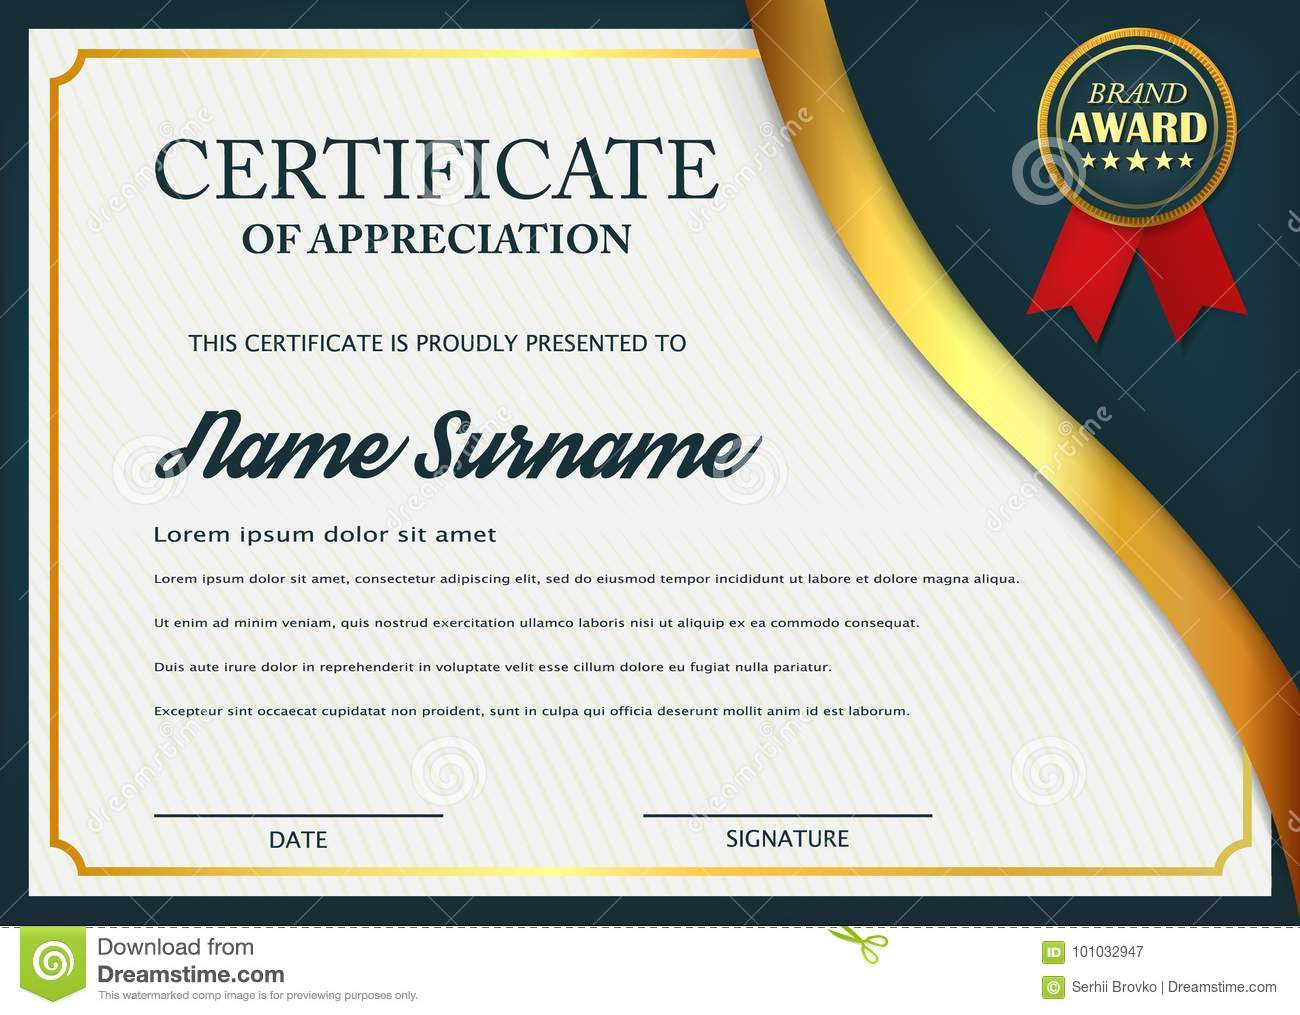 Creative certificate of appreciation award template certificate creative certificate of appreciation award template certificate template design with best award symbol and blue alramifo Choice Image